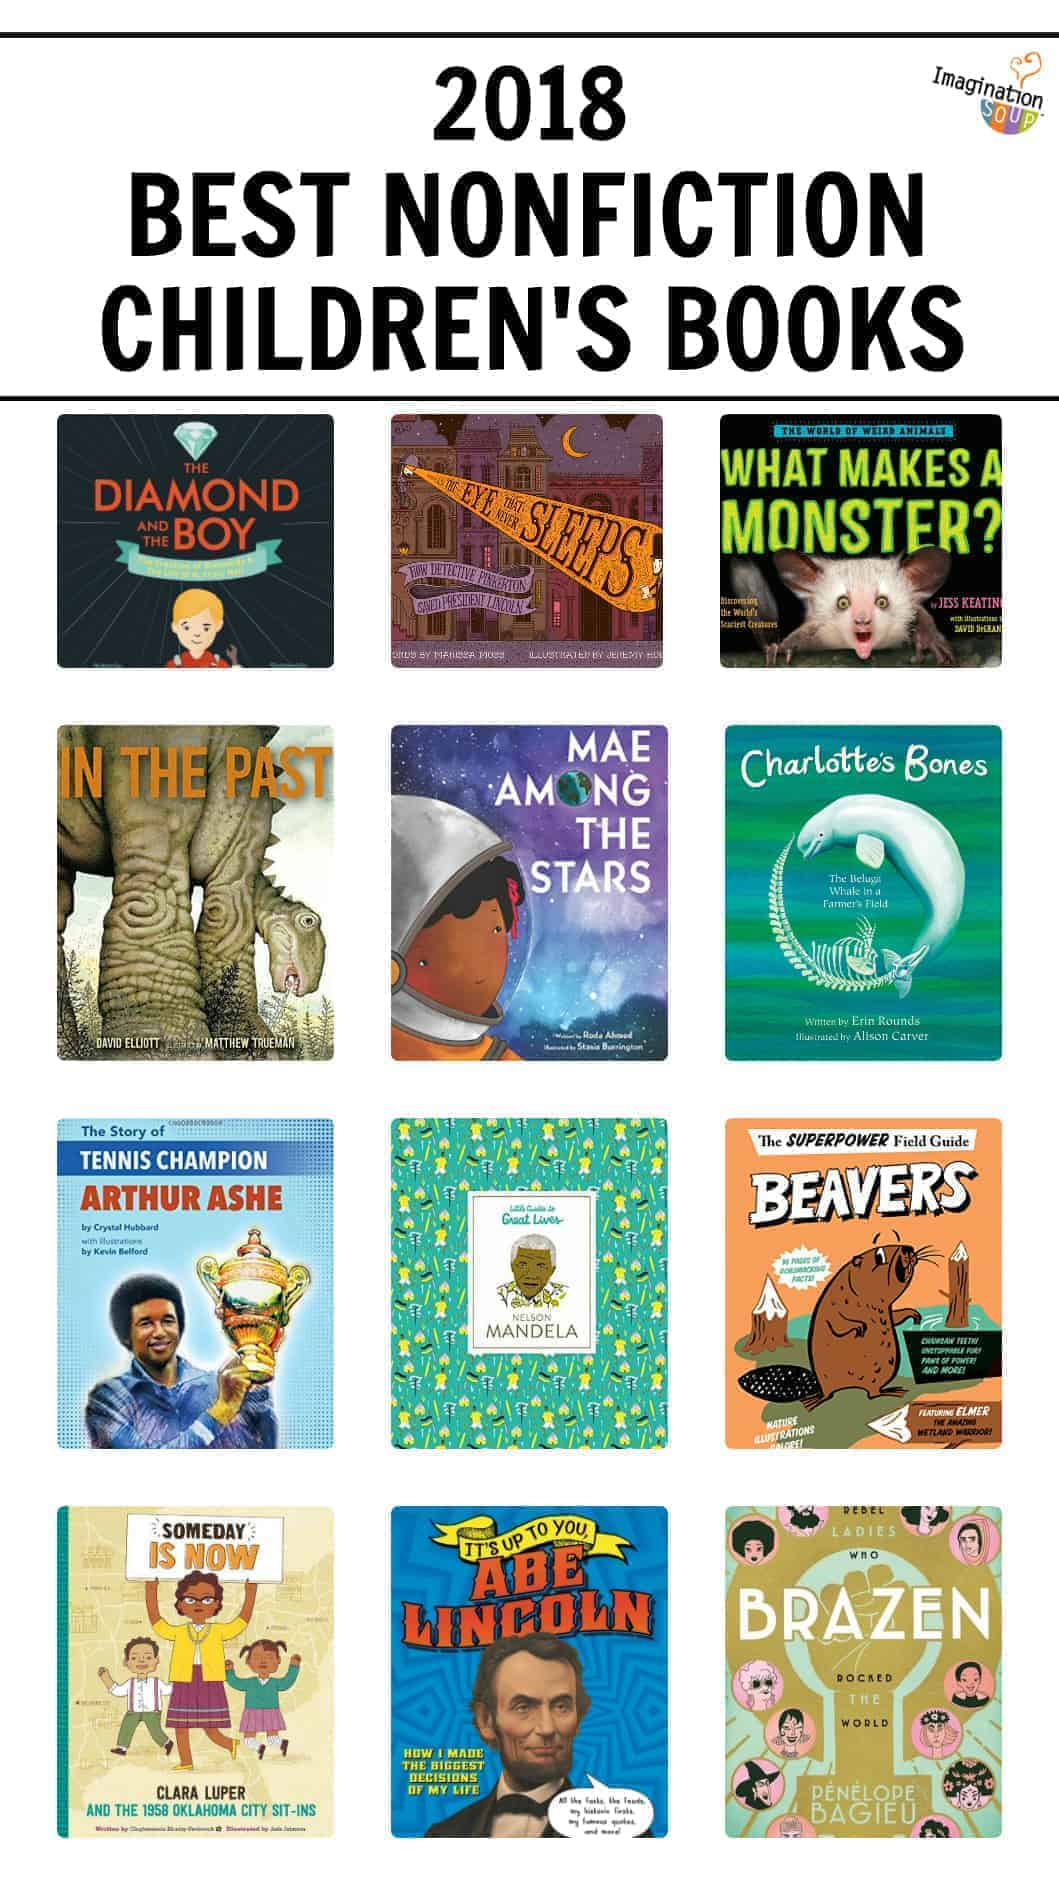 2018 best nonfiction childrens books